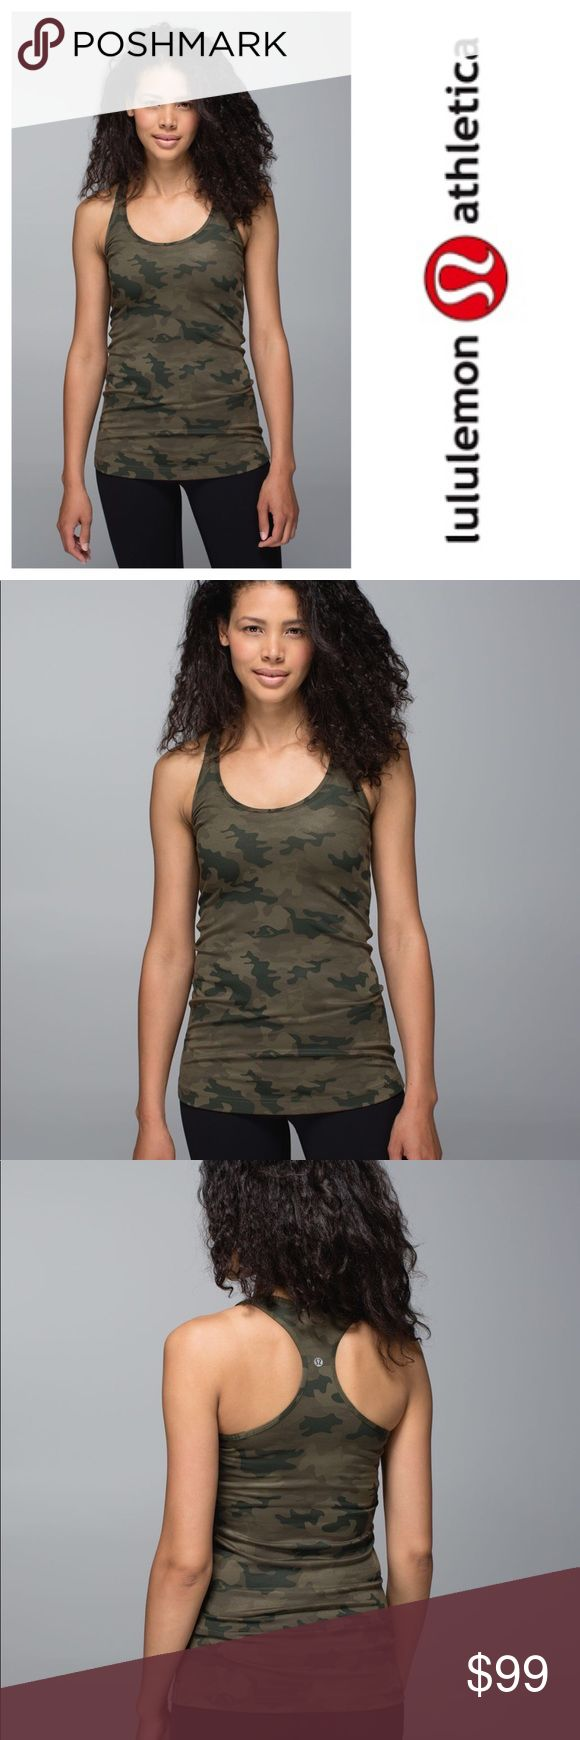 Lululemon Savasana rare camo Tank Top 10 Size 10. Rare camo print. Racerback style. Worn once. In  excellent condition. lululemon athletica Tops Tank Tops